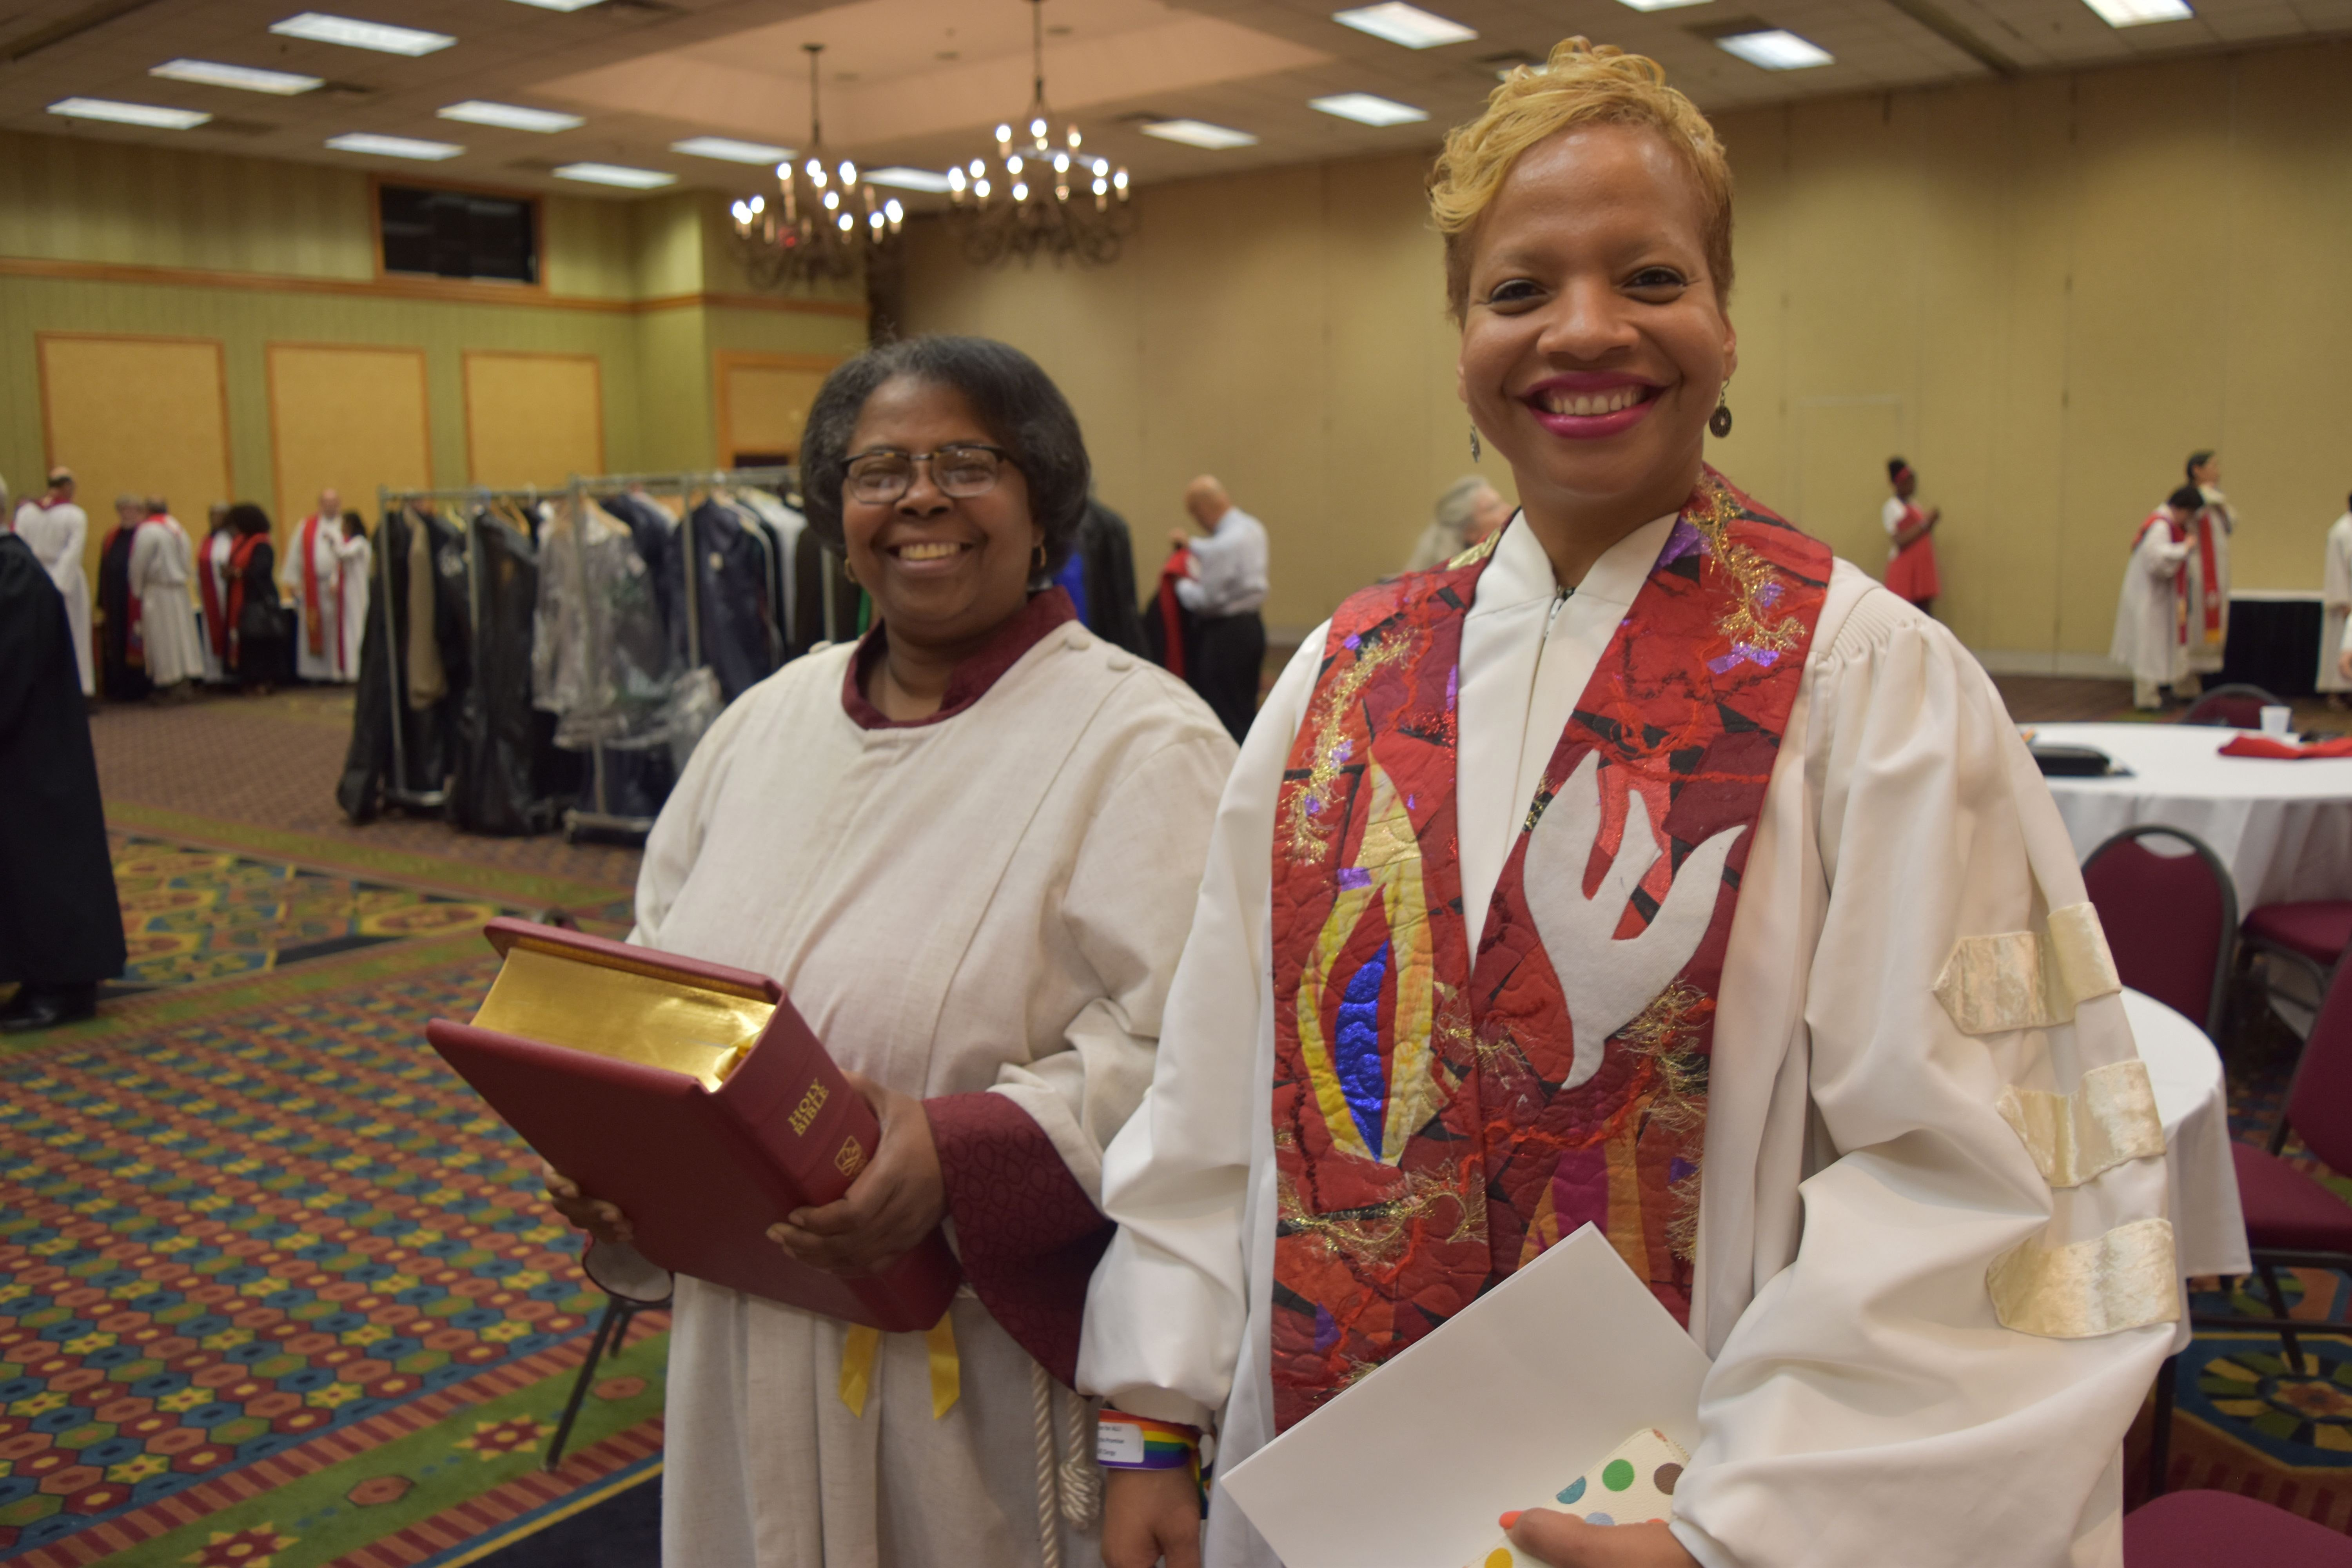 Bishop Tracy S. Malone (left) and the Rev. Darnearther Murph-Heath before the 2015 ordination service at the Northern Illinois Conference. Photo courtesy of the Northern Illinois Conference.